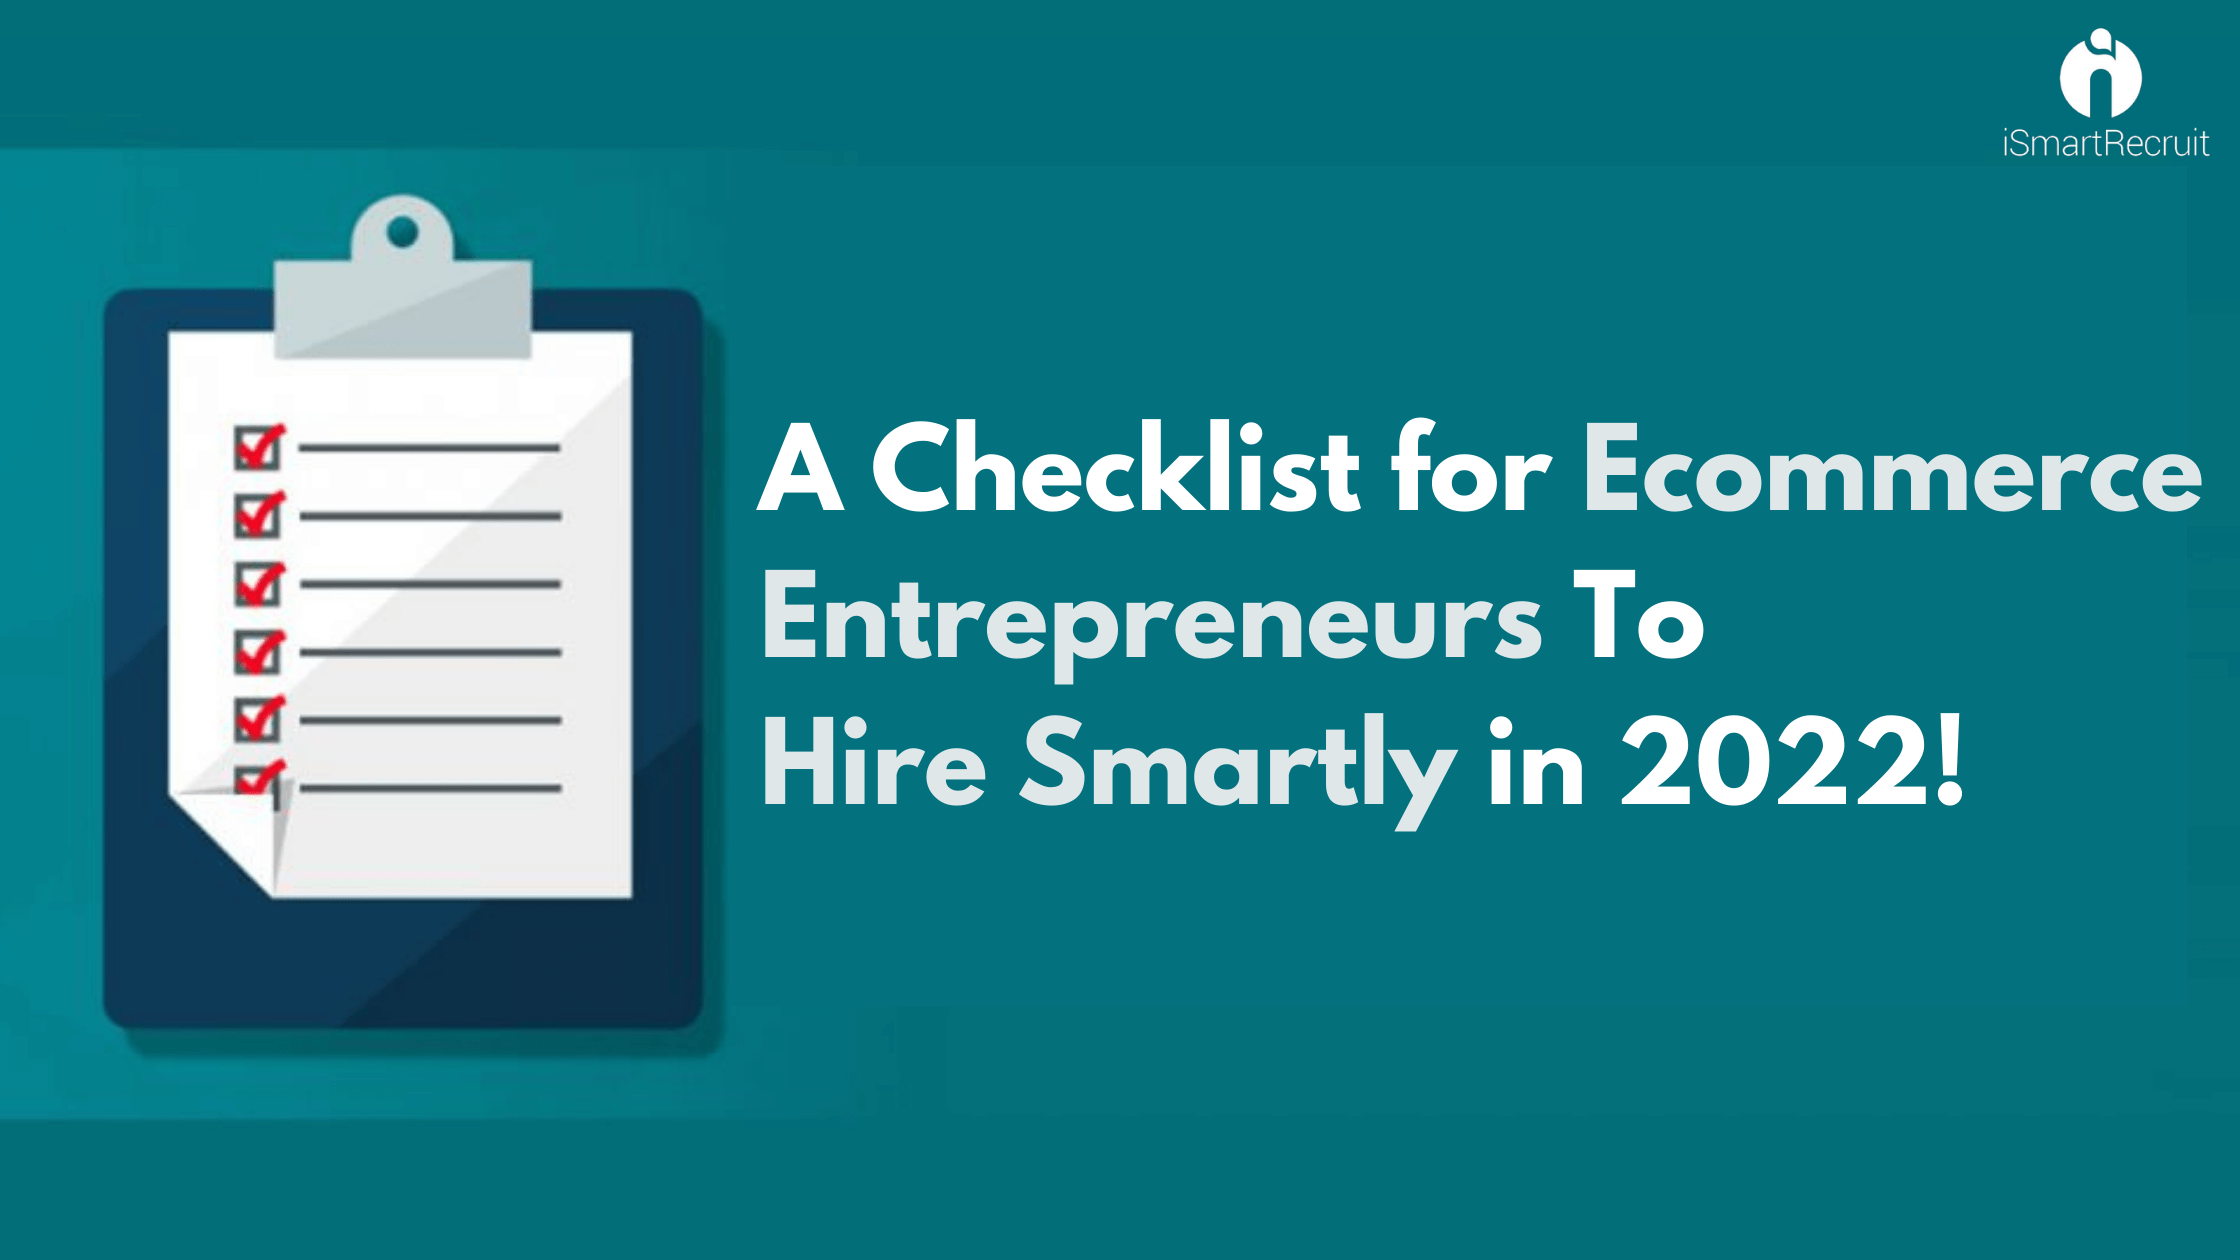 A Checklist for Ecommerce Entrepreneurs to Hire Smartly in 2022